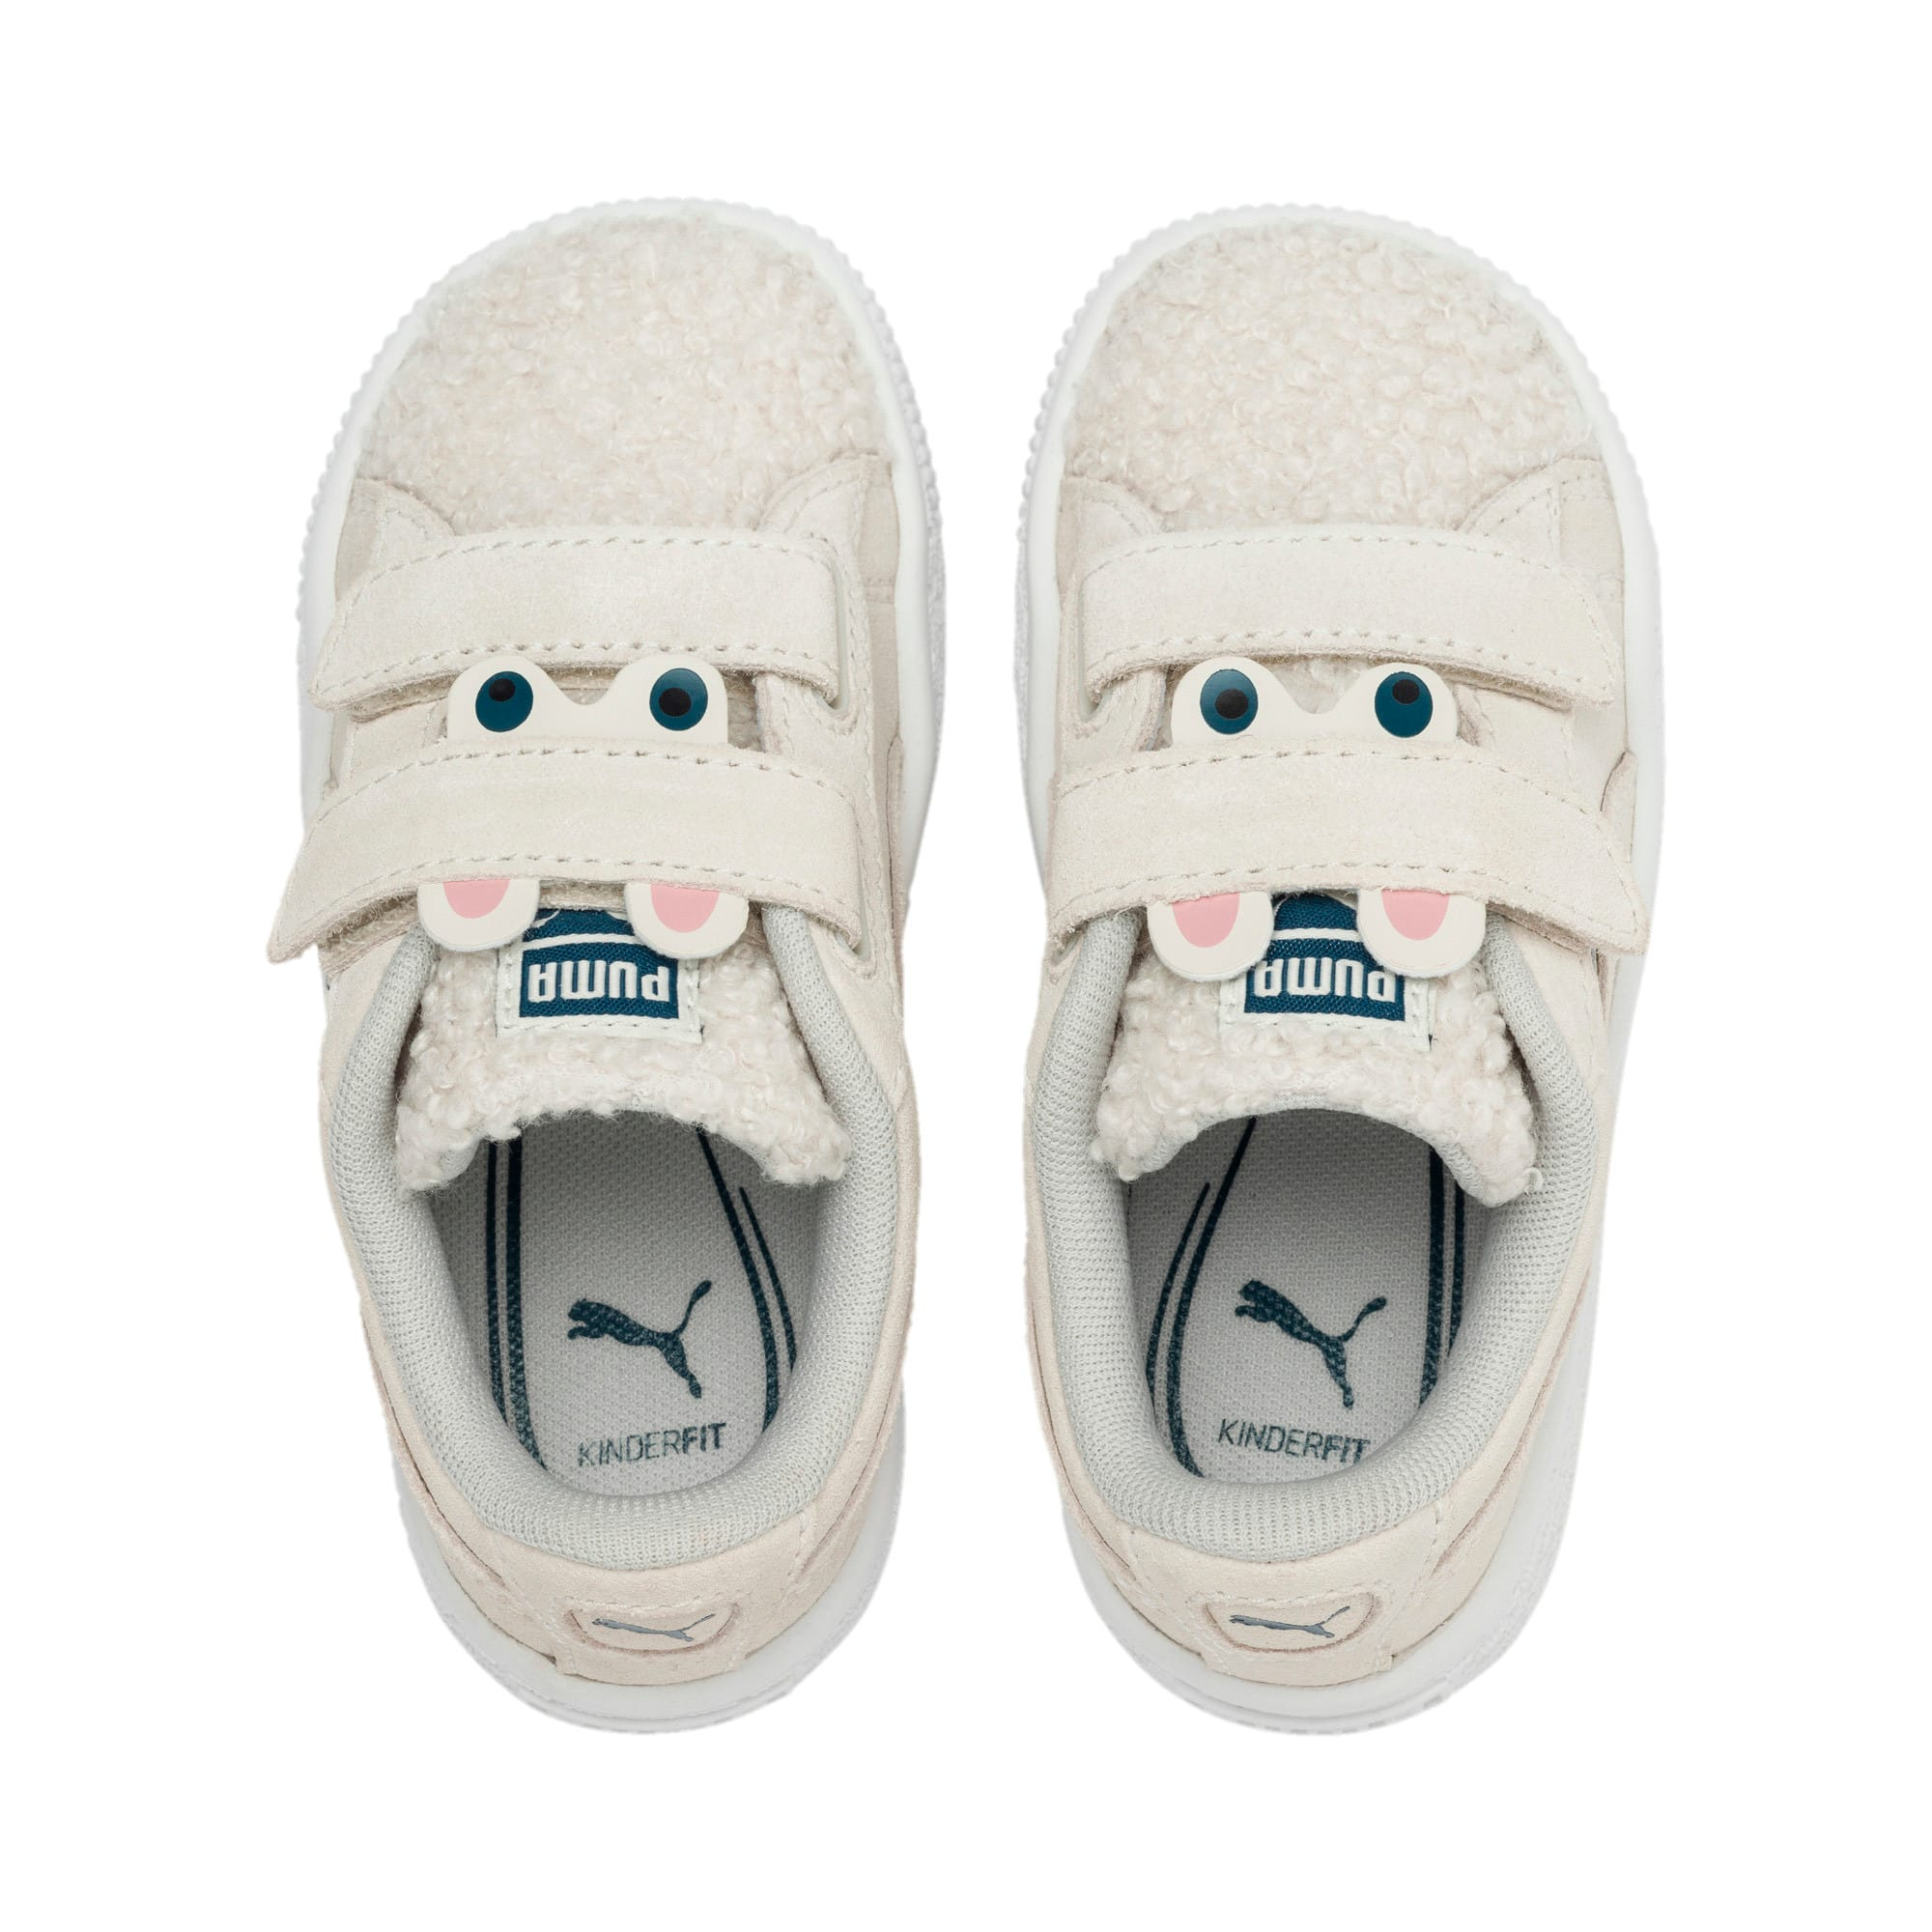 Thumbnail 6 of Suede Winter Monster Babies' Trainers, Whisper White-Gibraltar Sea, medium